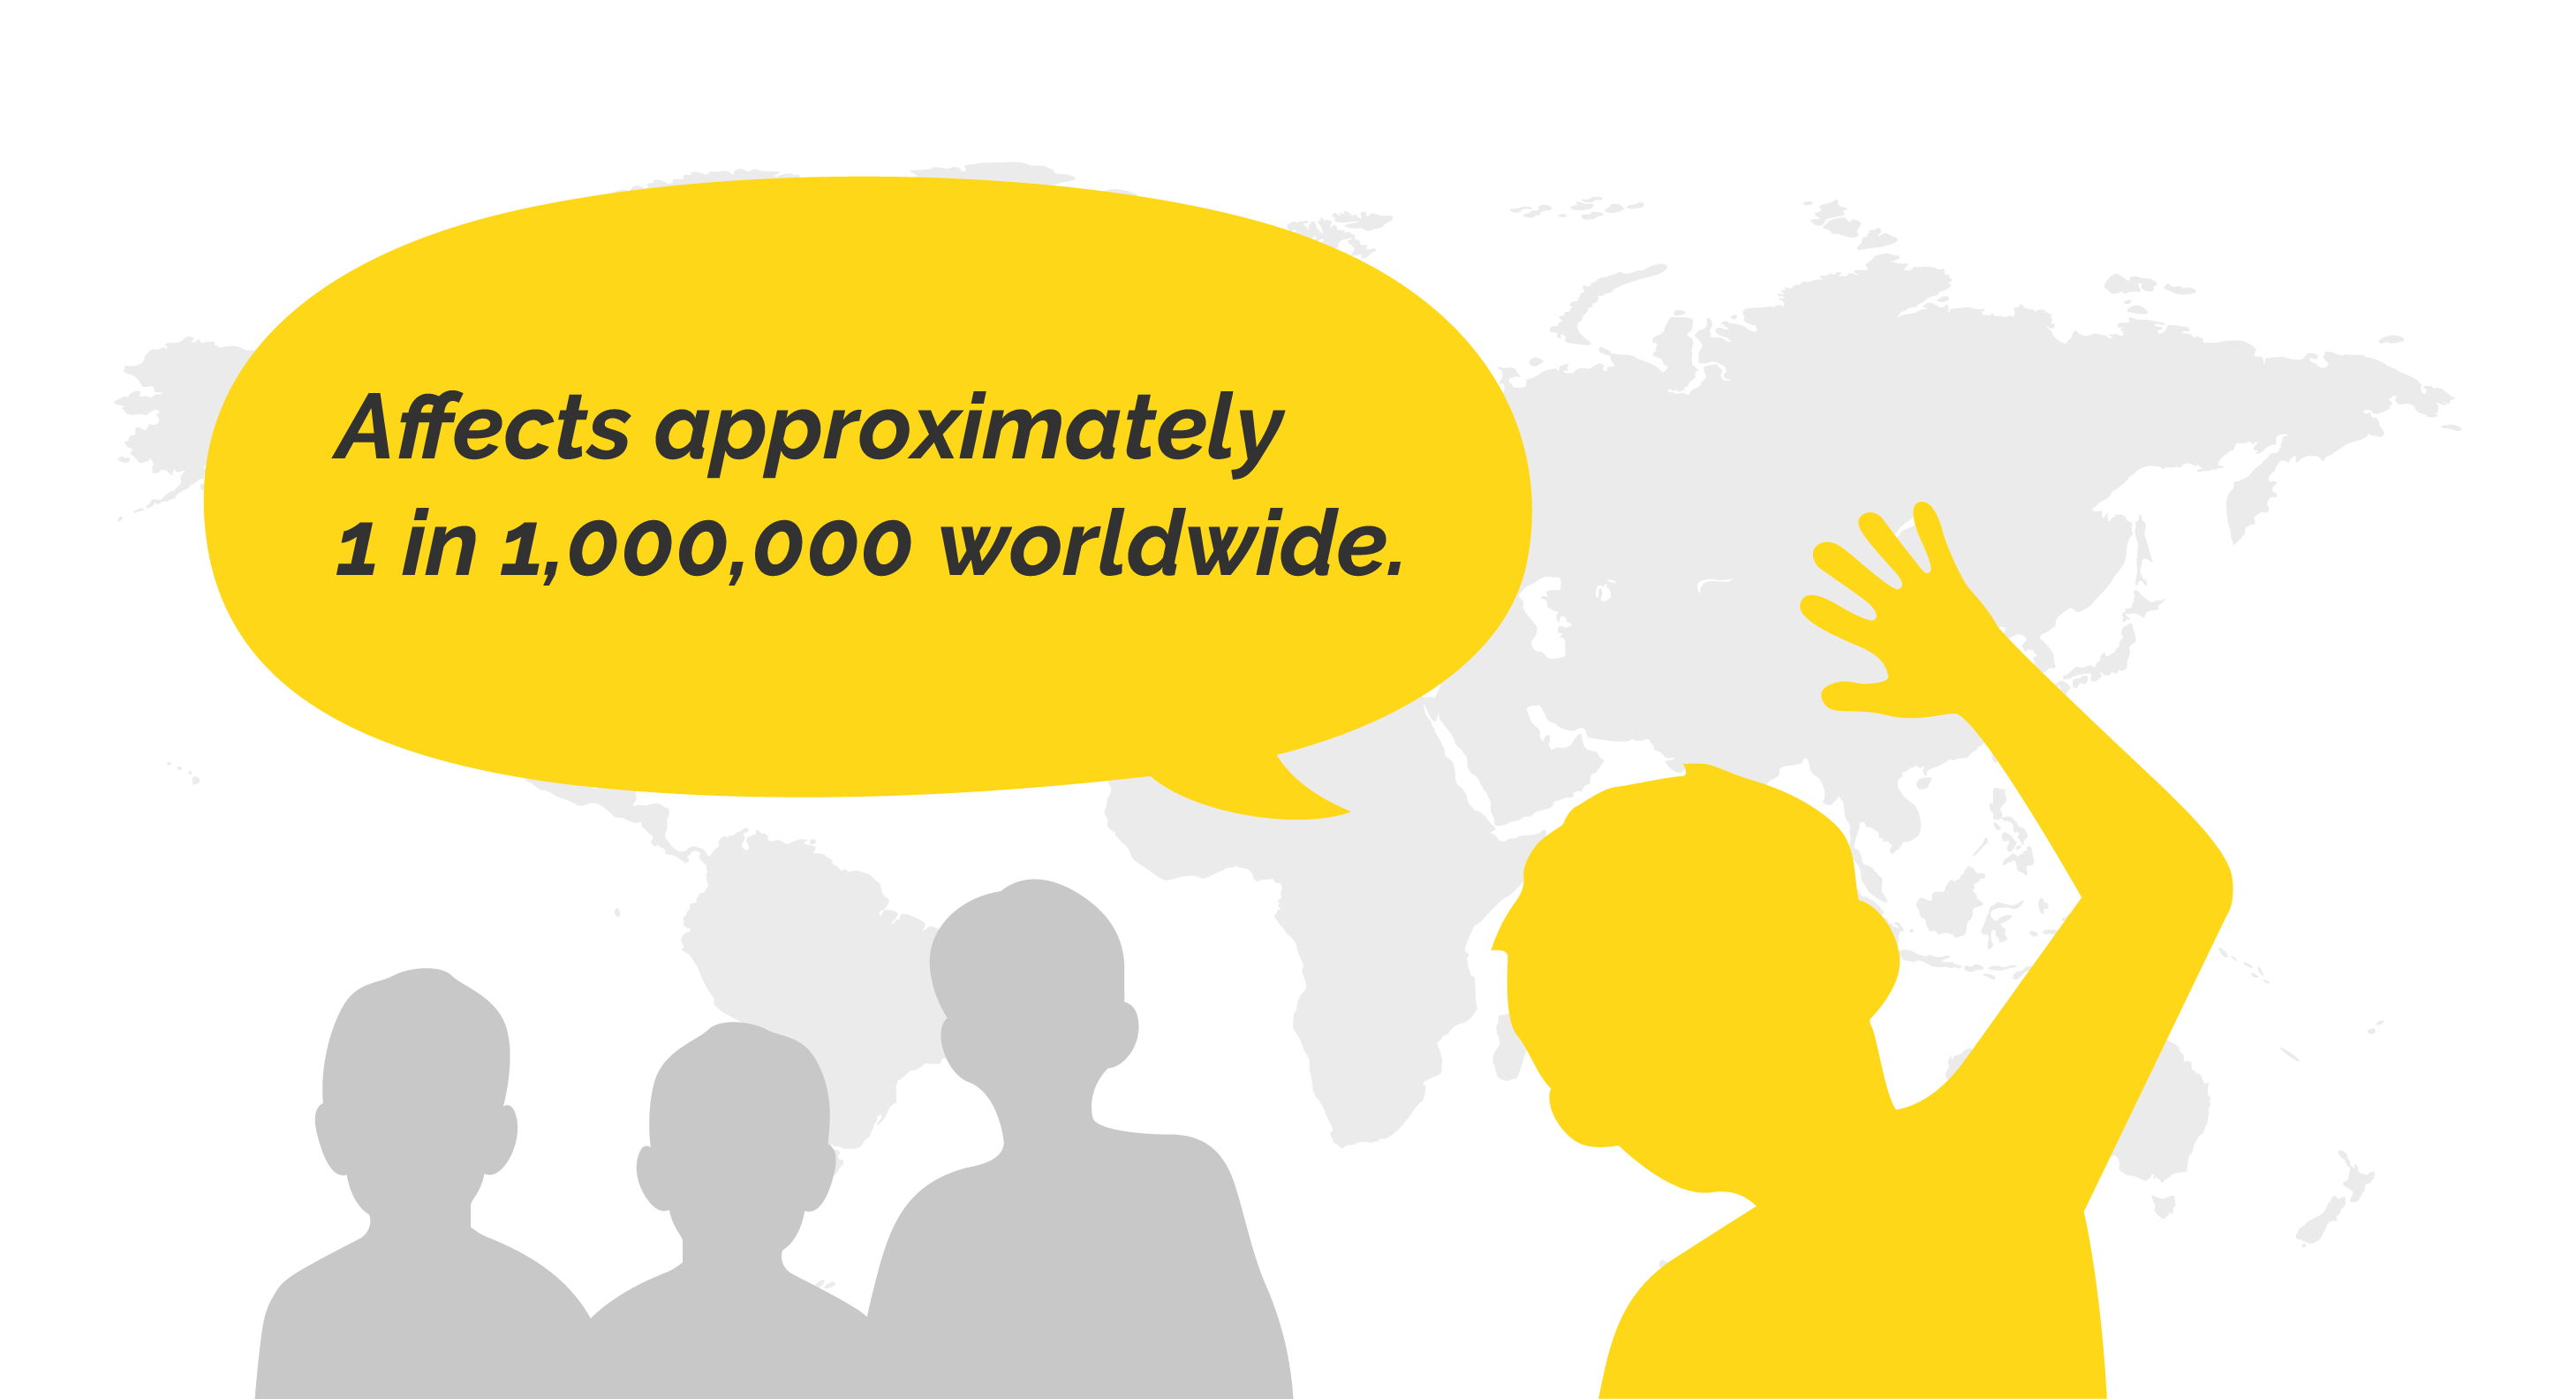 """Map background with silhouettes of children and words saying """"Affects approximately 1 in 1,000,000 worldwide."""""""